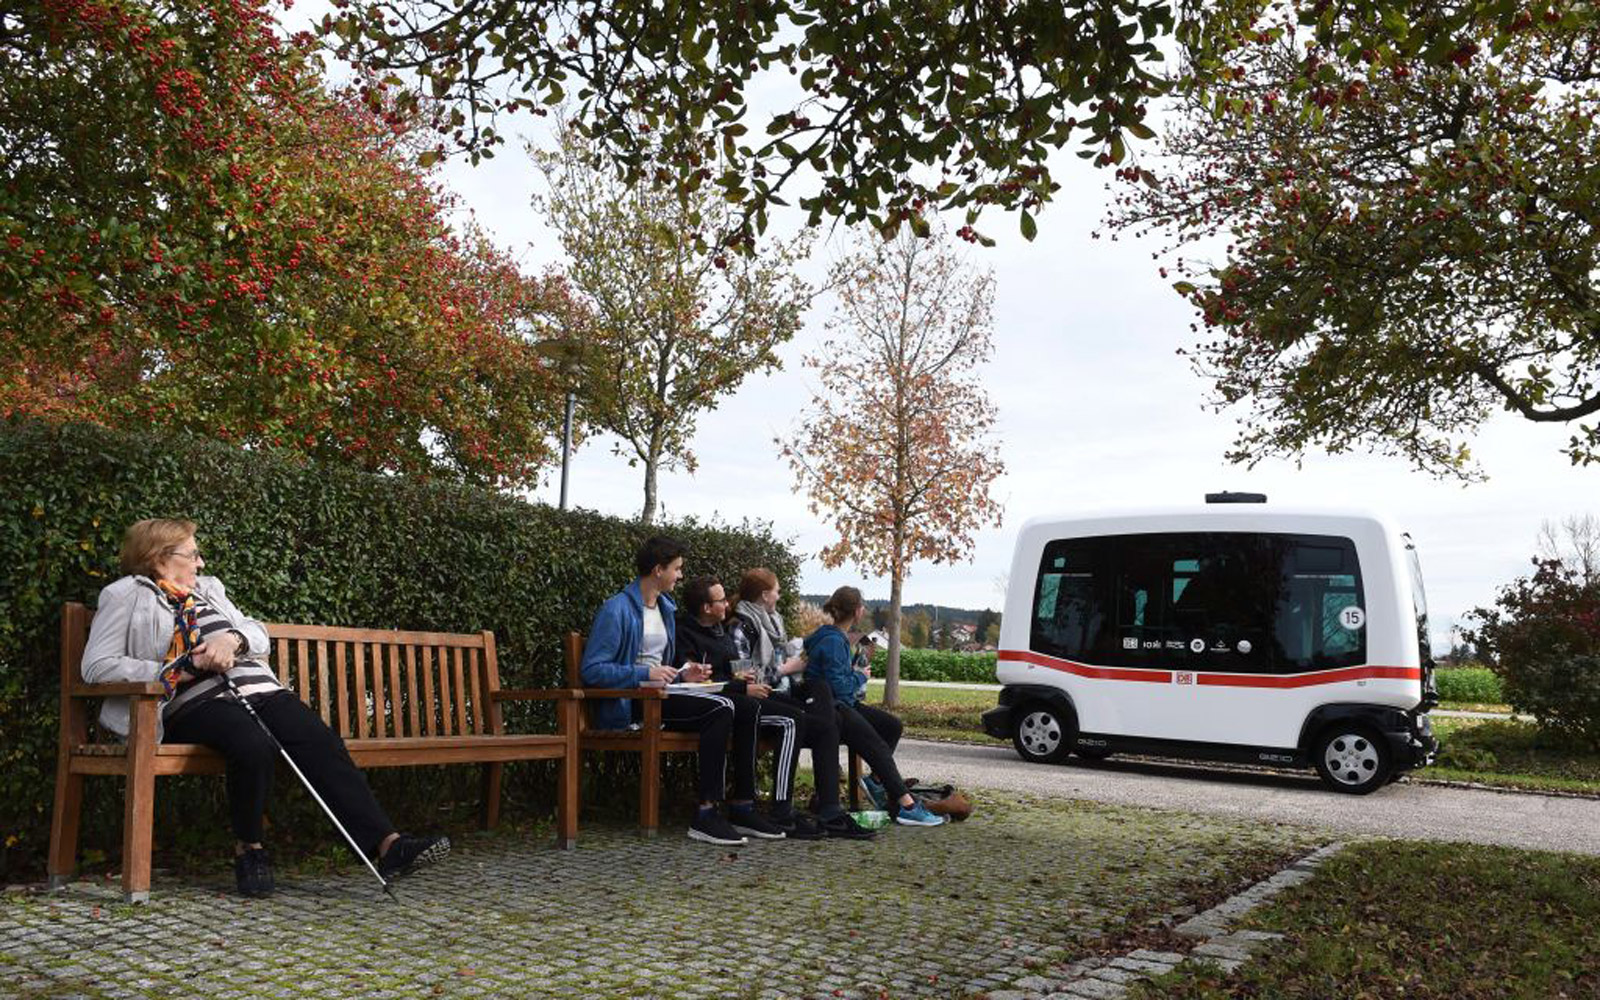 People watch the first German autonomous public transport bus which drives during a presentation beside a park in Bad Birnbach